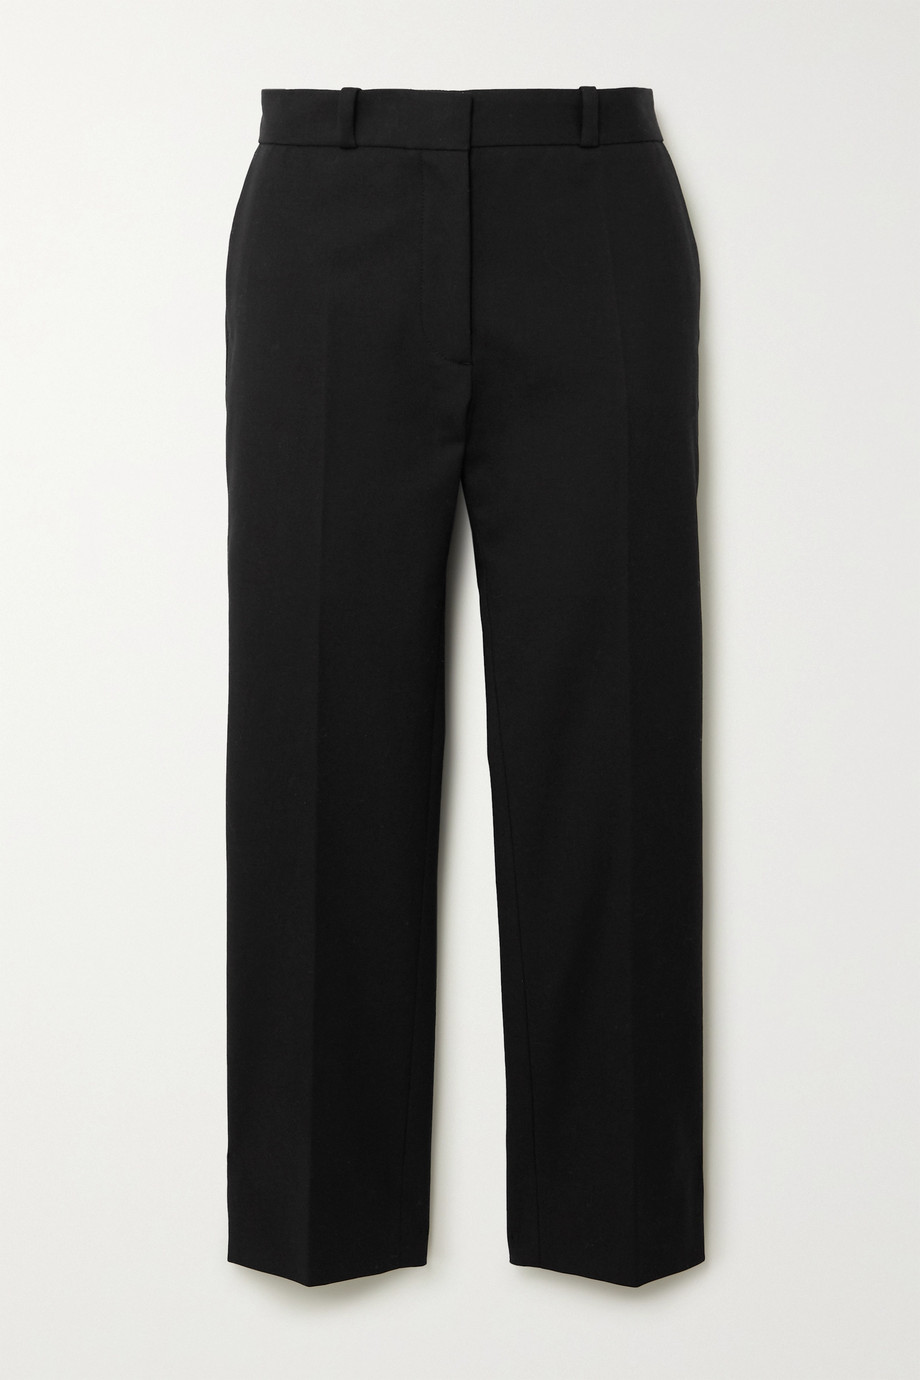 Joseph Bing cropped cotton-blend twill straight-leg pants